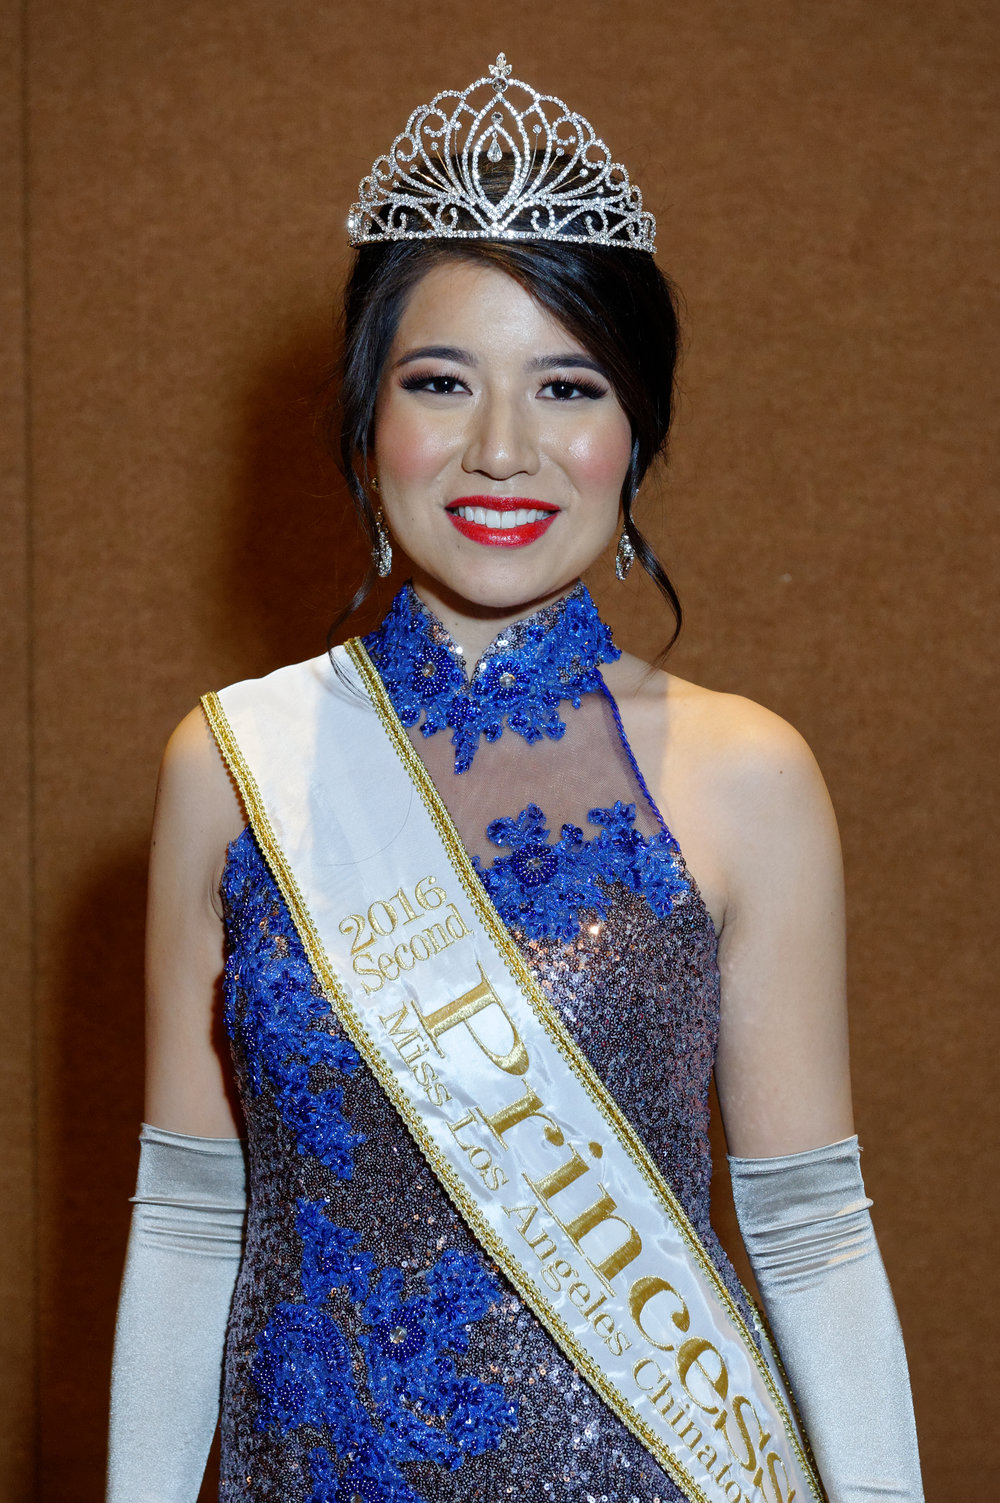 Second Princess, Kristen Phung